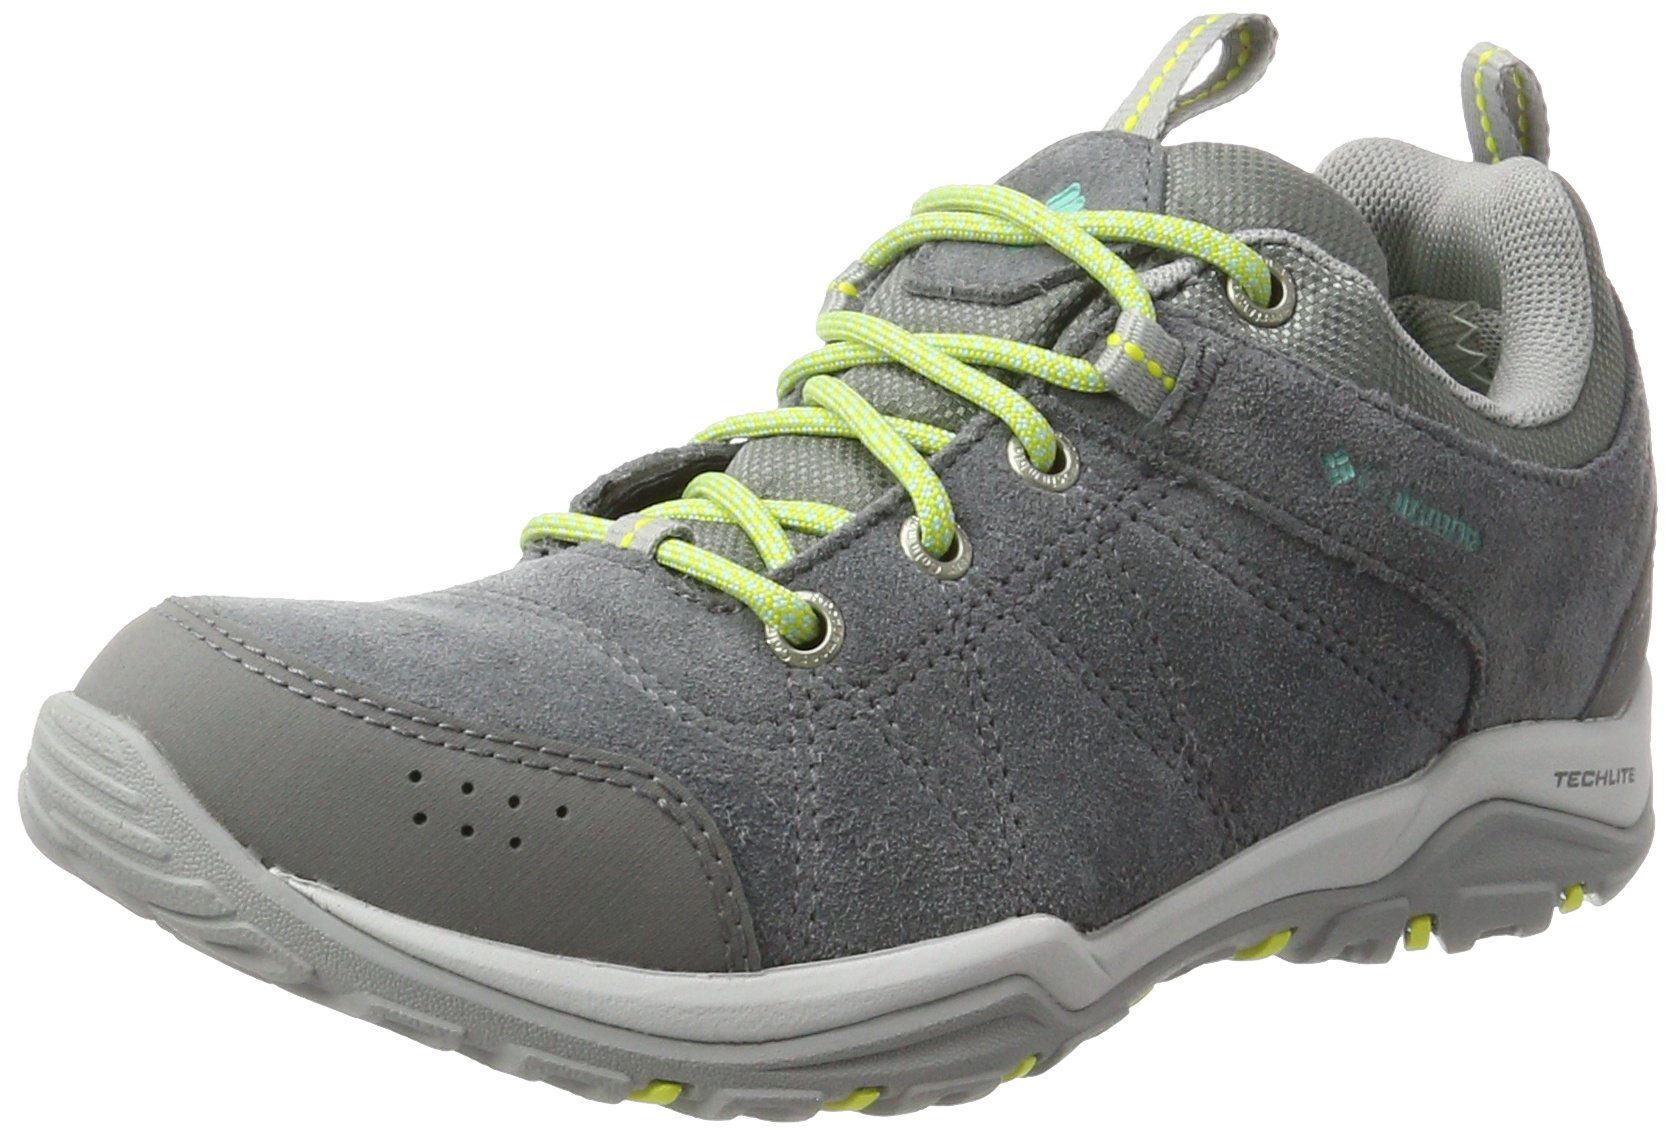 Columbia Women's Fire Venture Low Waterproof Hiking Shoe, Grey Steel/Aquarium, 8.5 B US